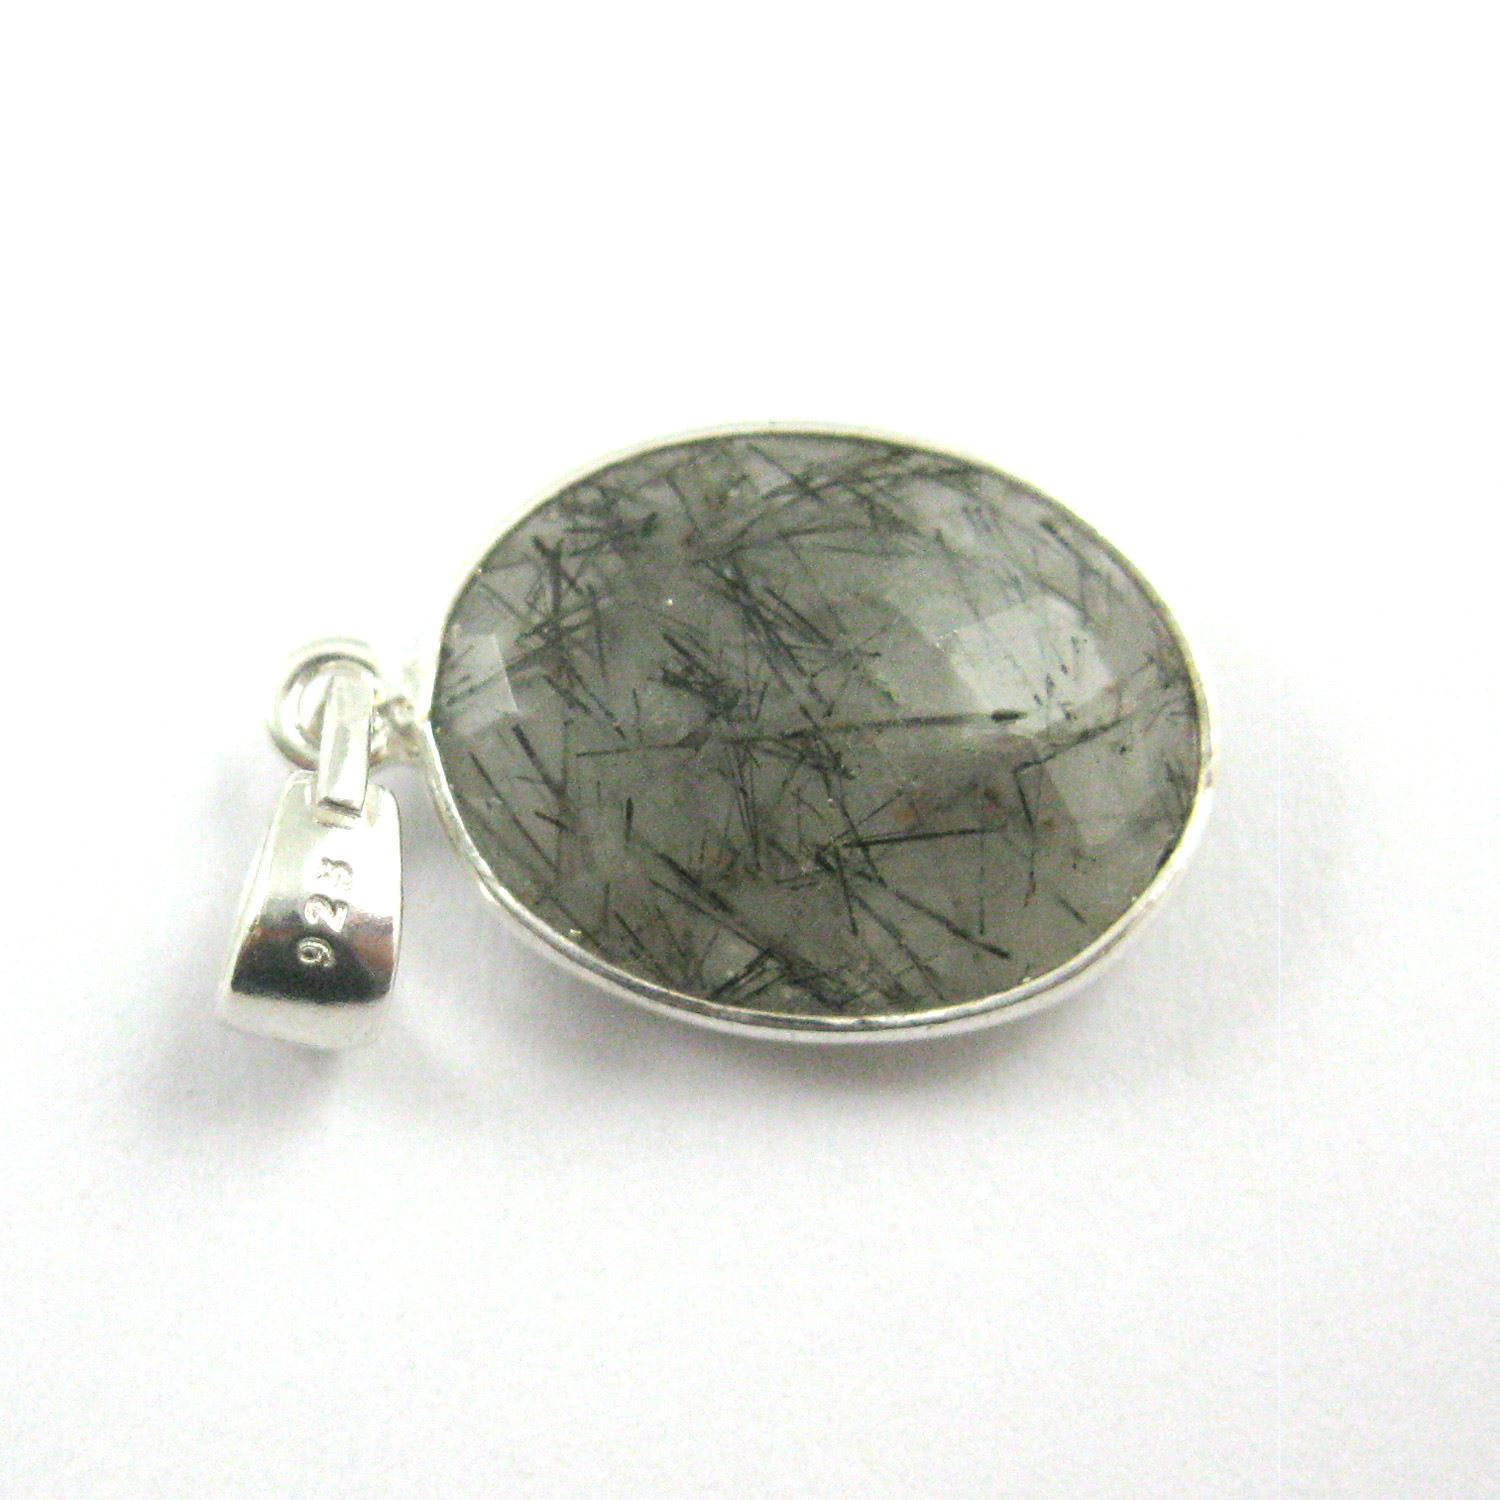 Bezel Gemstone Pendant with Bail - Sterling Silver Oval Gem Pendant - Ready for Necklace - 28mm - Black Rutilated Quartz